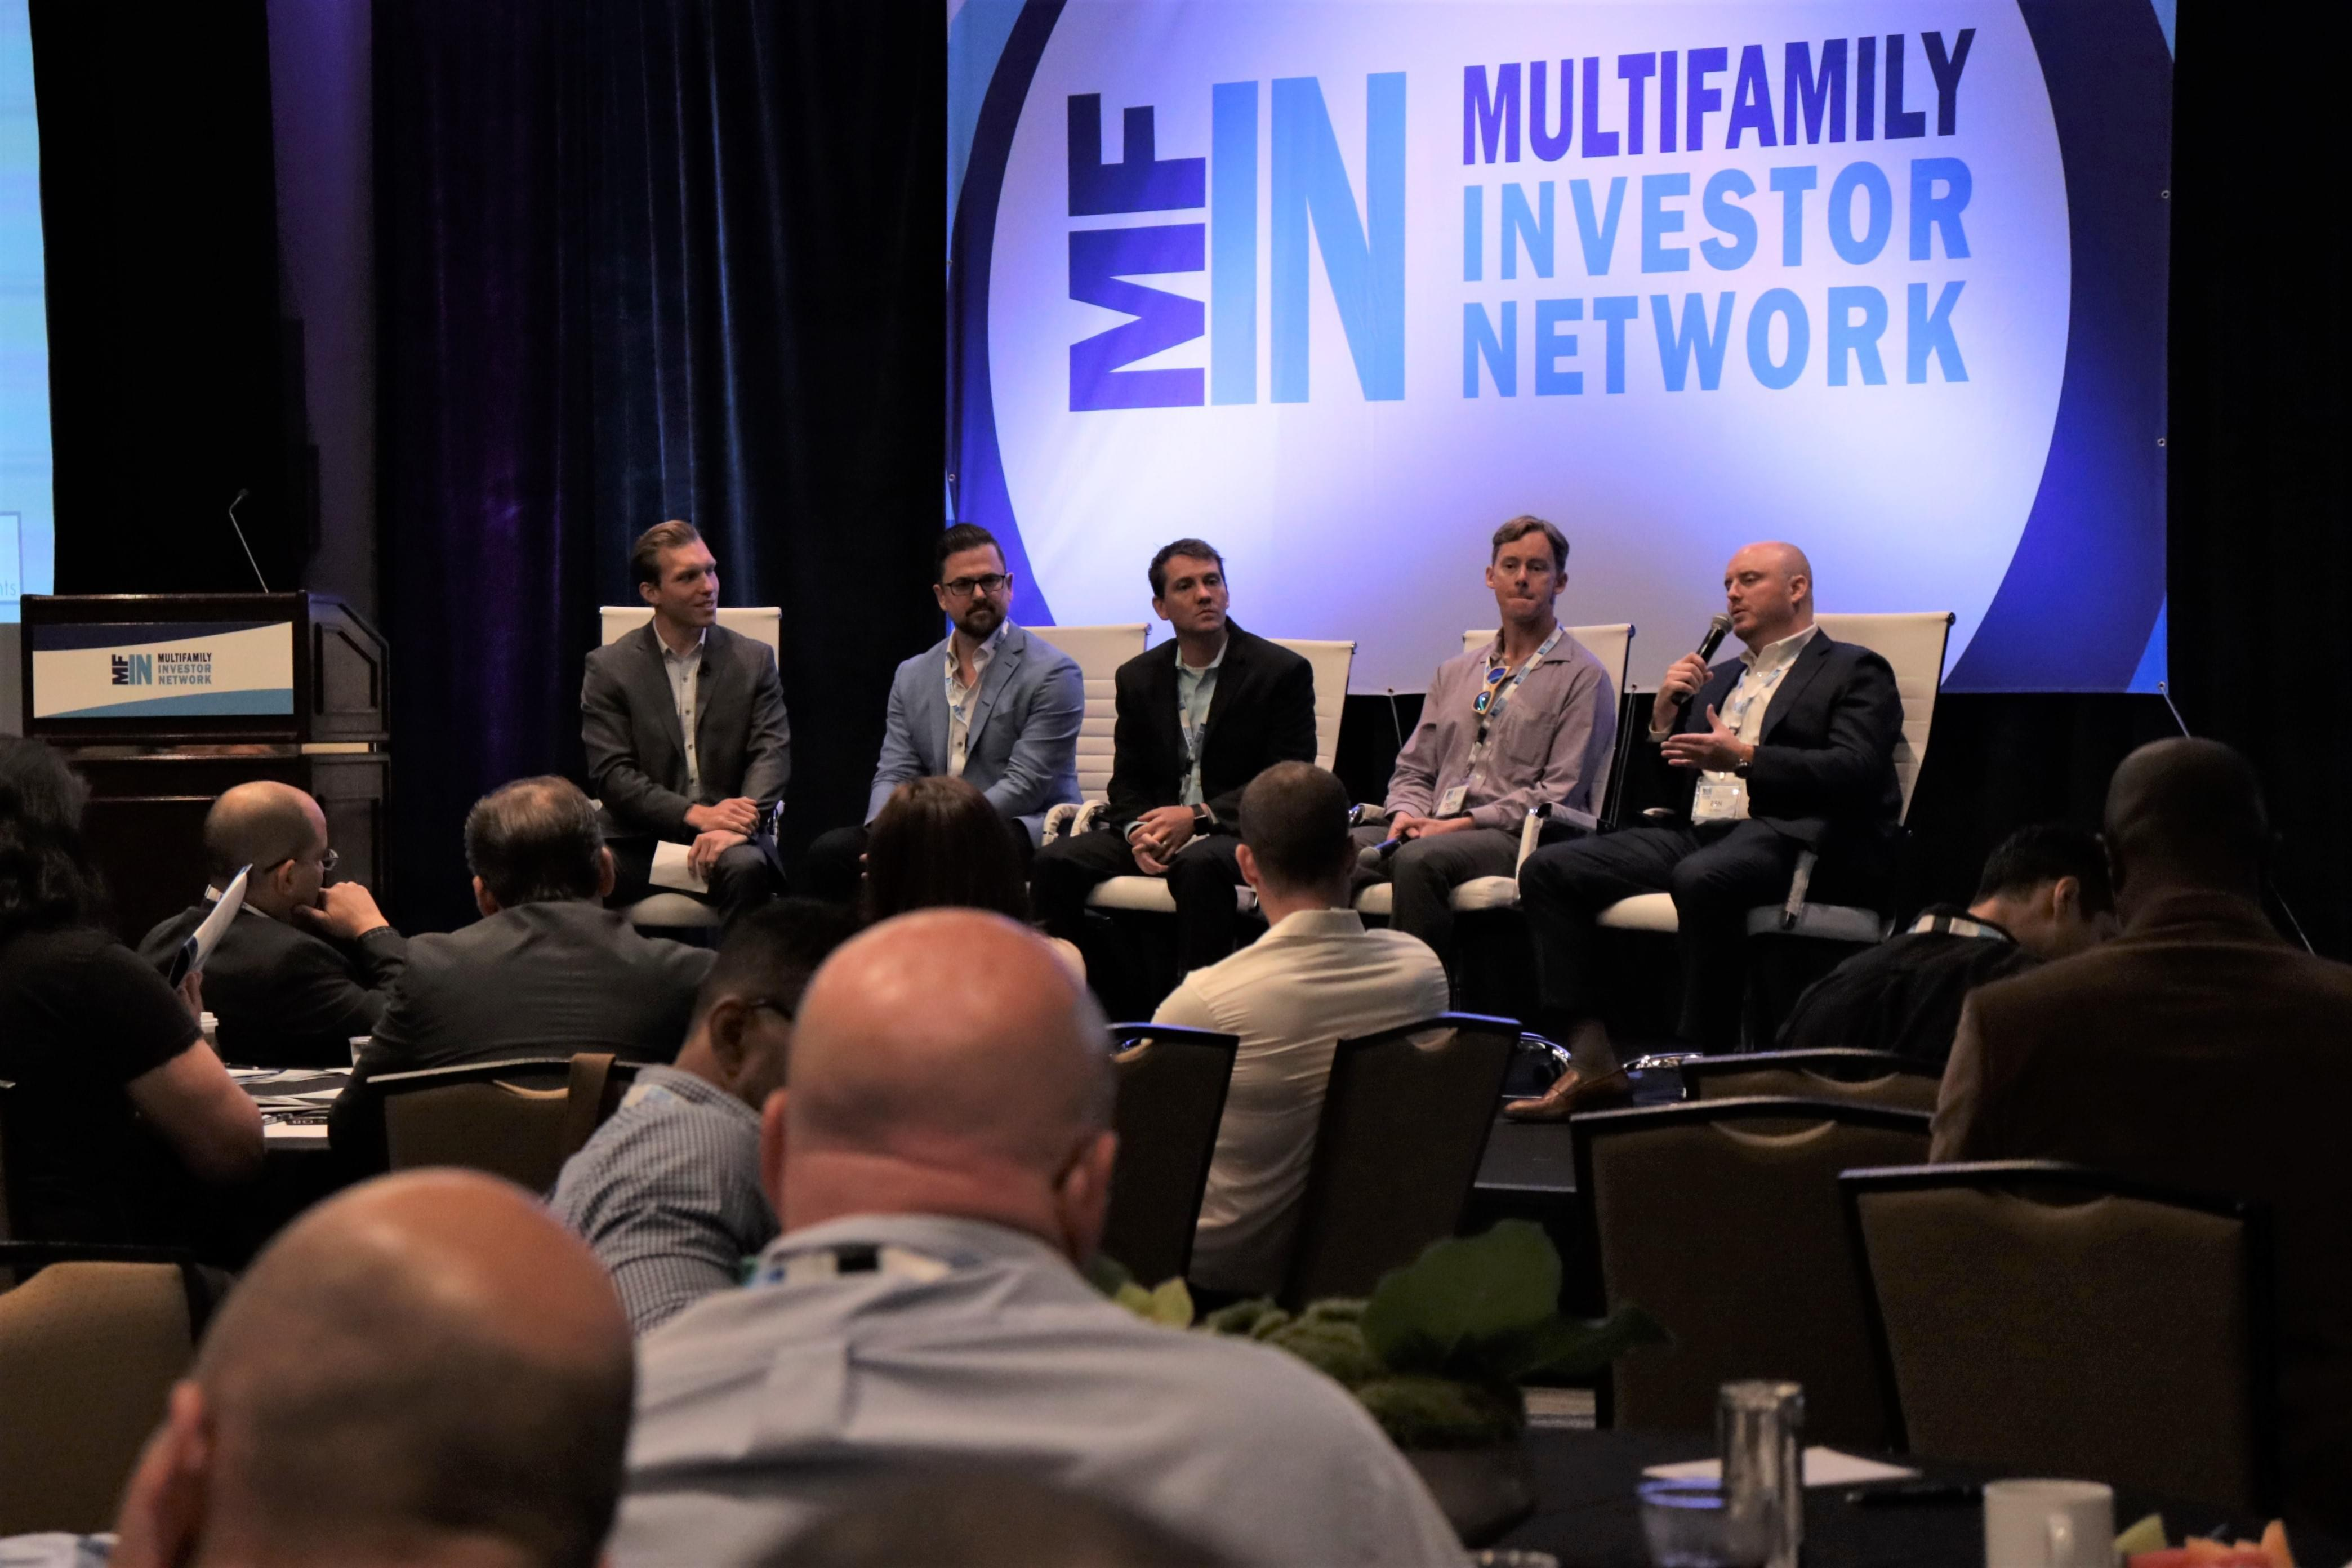 Syndicator Panel - Multifamily Investor Network Conference